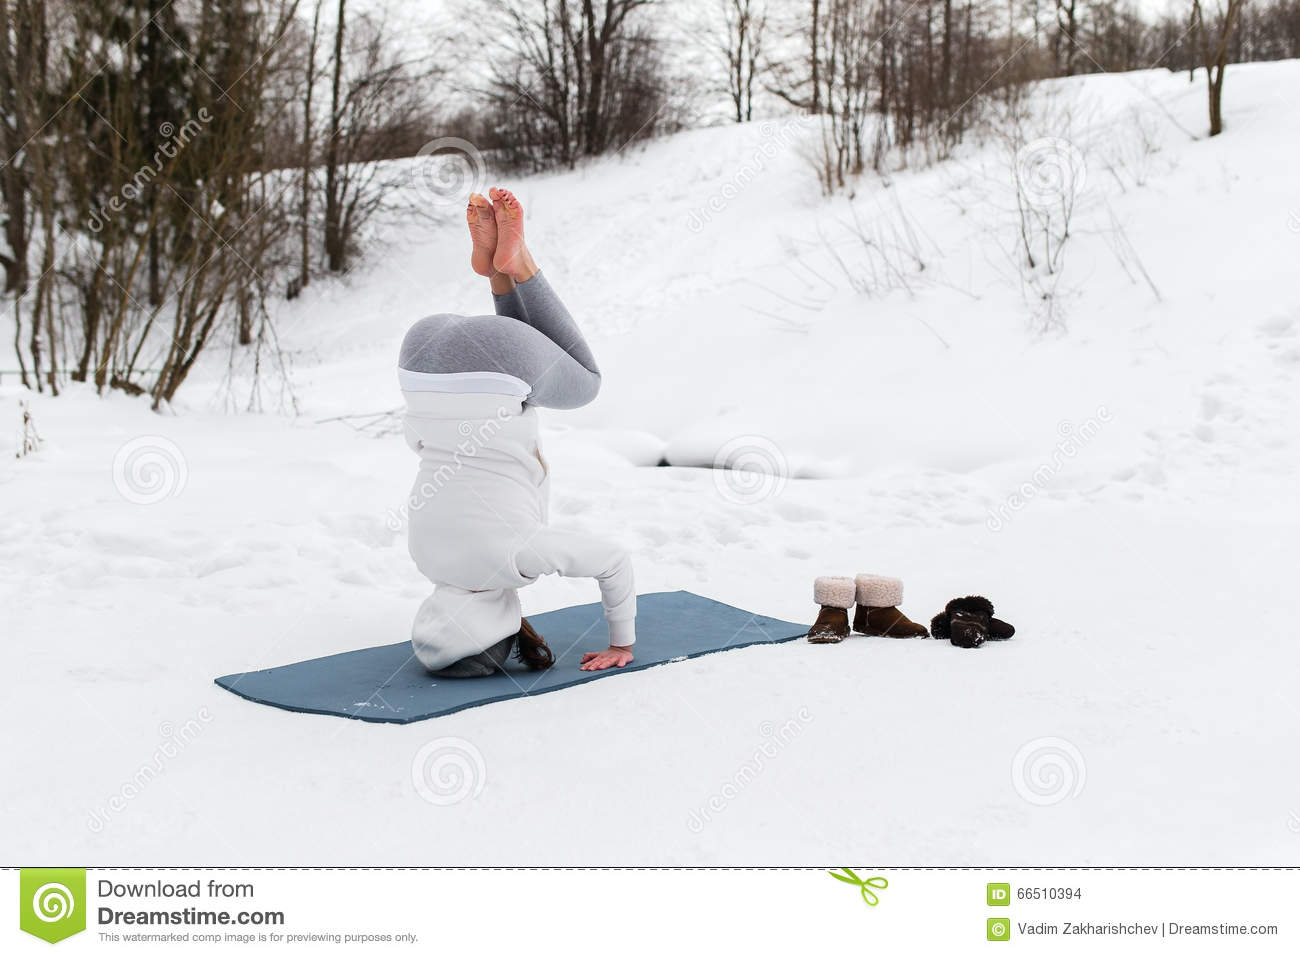 https://thumbs.dreamstime.com/z/winter-yoga-session-beautiful-place-young-athletic-woman-doing-woods-girl-engaged-fitness-park-66510394.jpg